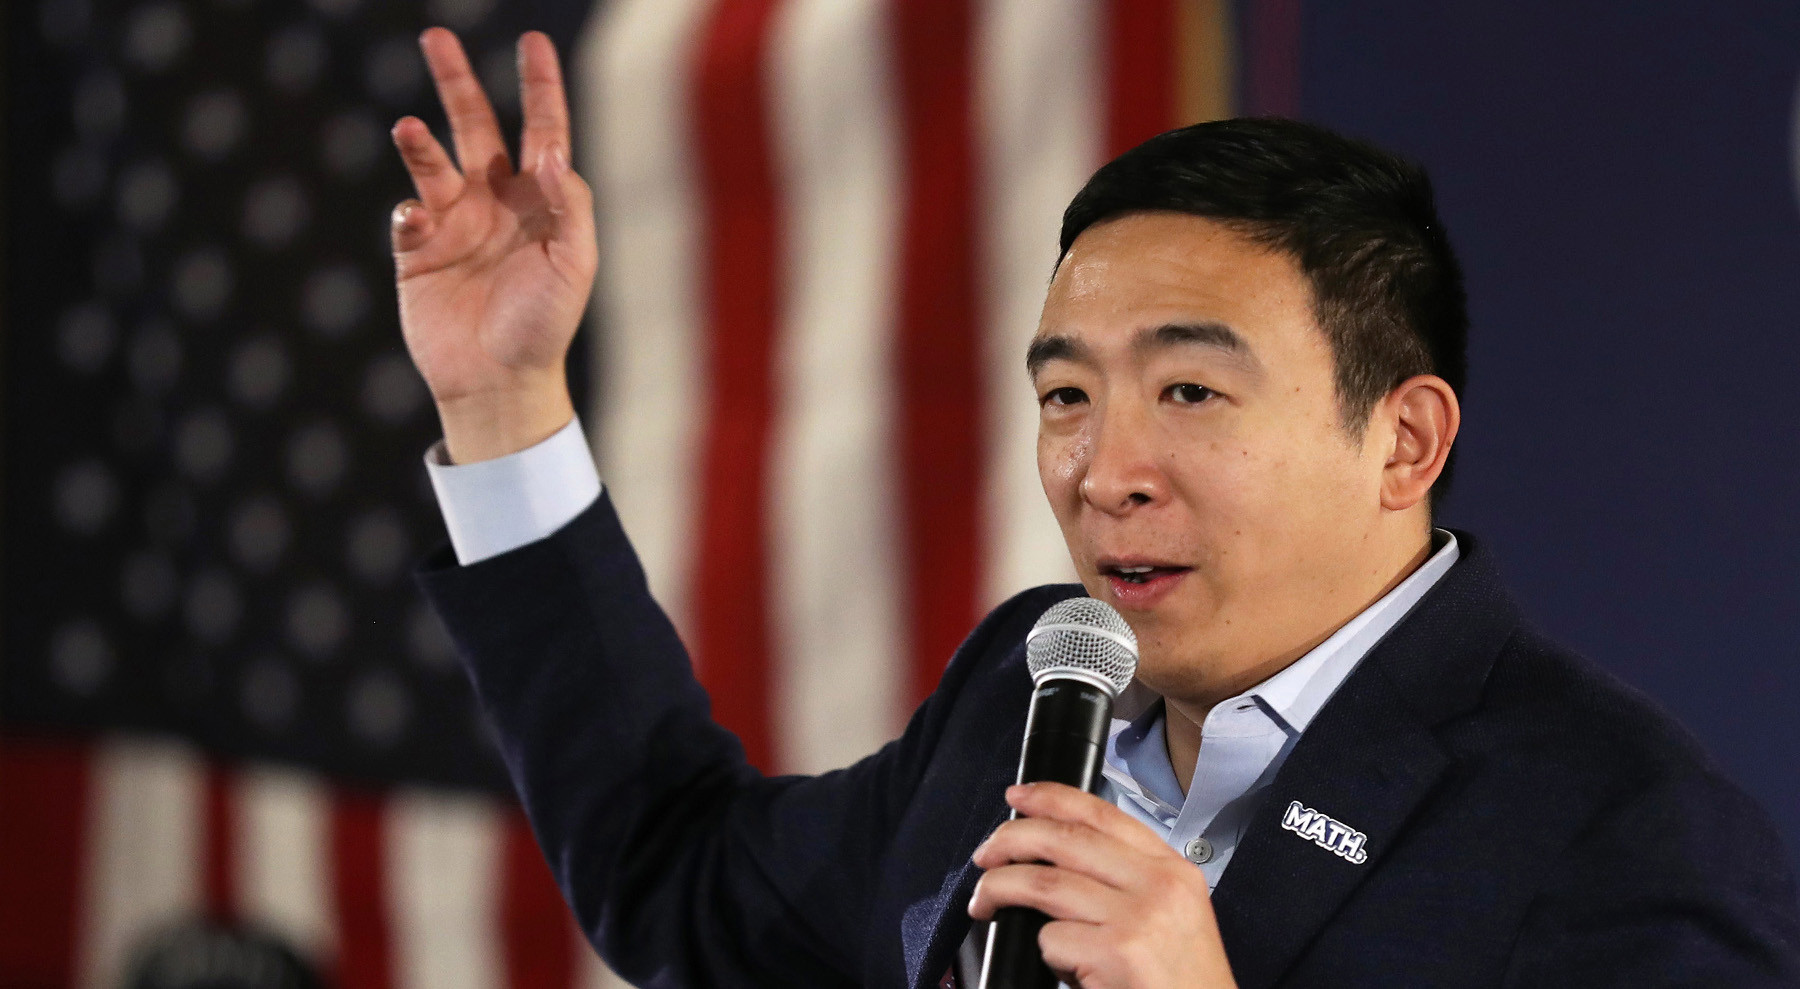 Andrew Yang is a Politician for the Future